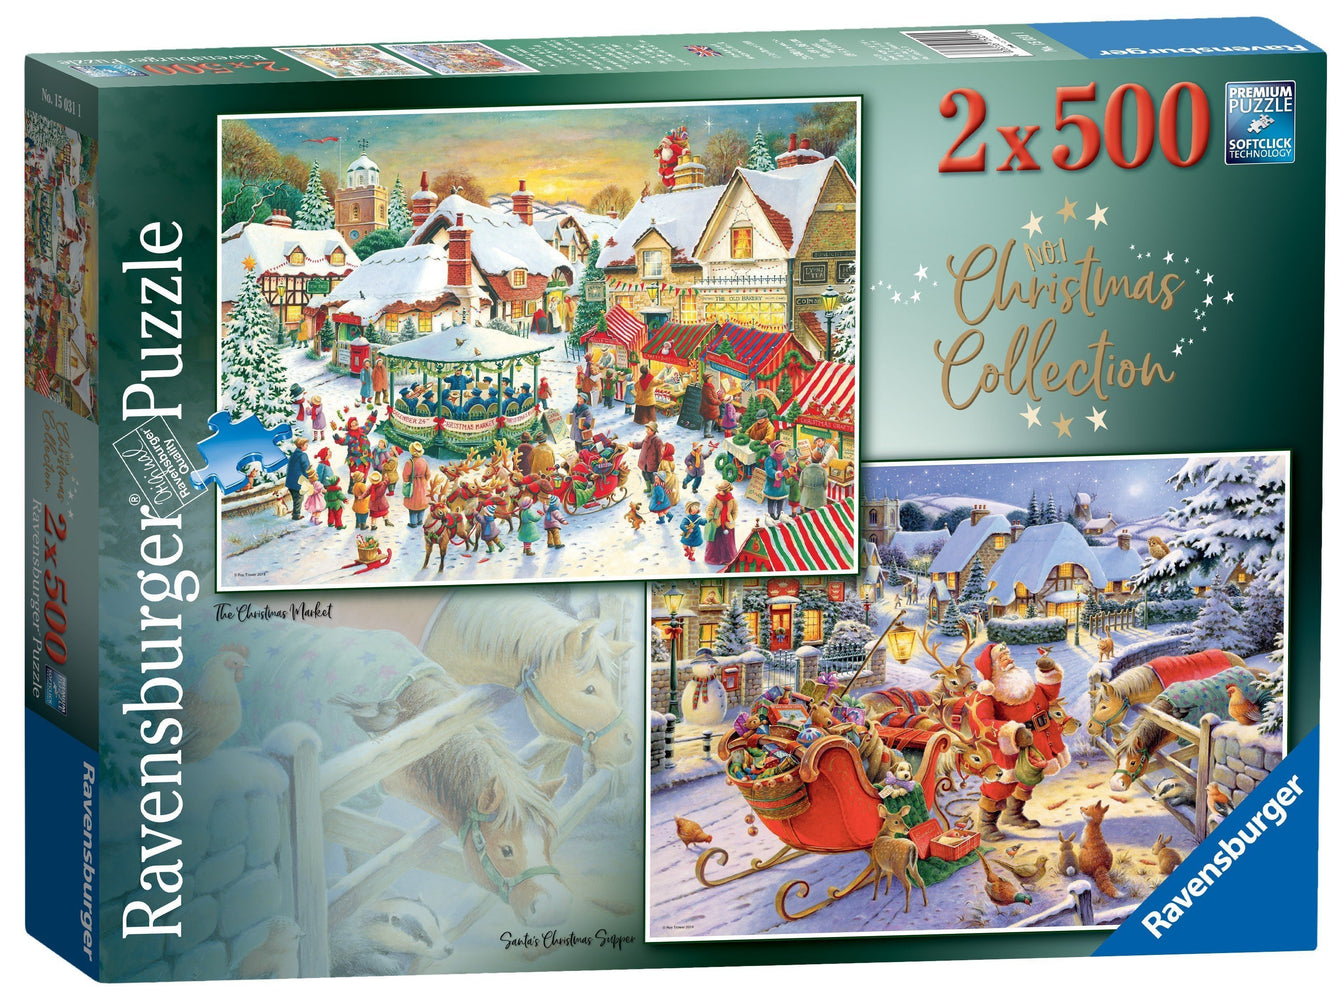 Christmas Collection No 1 - Christmas Market & Santa's Christmas Supper 2 x 500 Piece Jigsaw Puzzles